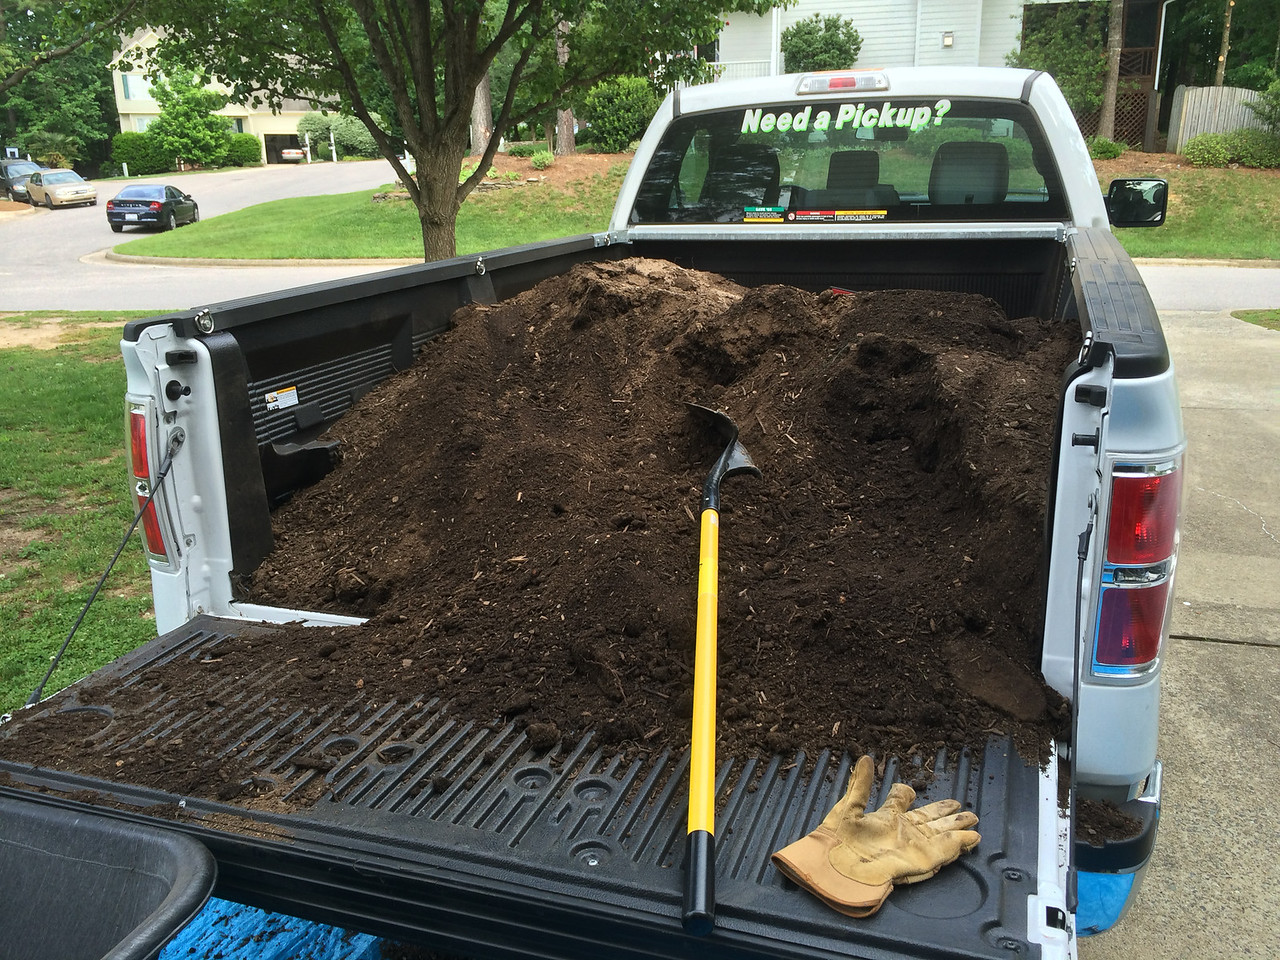 This is what one and a half cubic yards of 50/50 (50% landscape soil, 50% compost) from Mulch Masters looks like. <br /> <br /> A local U-Haul place offered 24-hour rental of a Ford F150 for a decent price. They said moving dirt would be okay since it had a bed liner. It even came with a bad pun on the back window, which is always nice. Apparently a full size pickup can carry up to two cubic yards so this much wasn't a problem.<br /> <br /> It was a lot of dirt and it took a long time to move to the beds, one wheelbarrow full at a time. (Safety tip: a wheelbarrow full of dirt is very heavy and you don't want to be on the downhill side of it.) It took about four hours (?) to move all the dirt. Hosing down the truck afterward took an hour since dirt hides in the bed liner crevices.